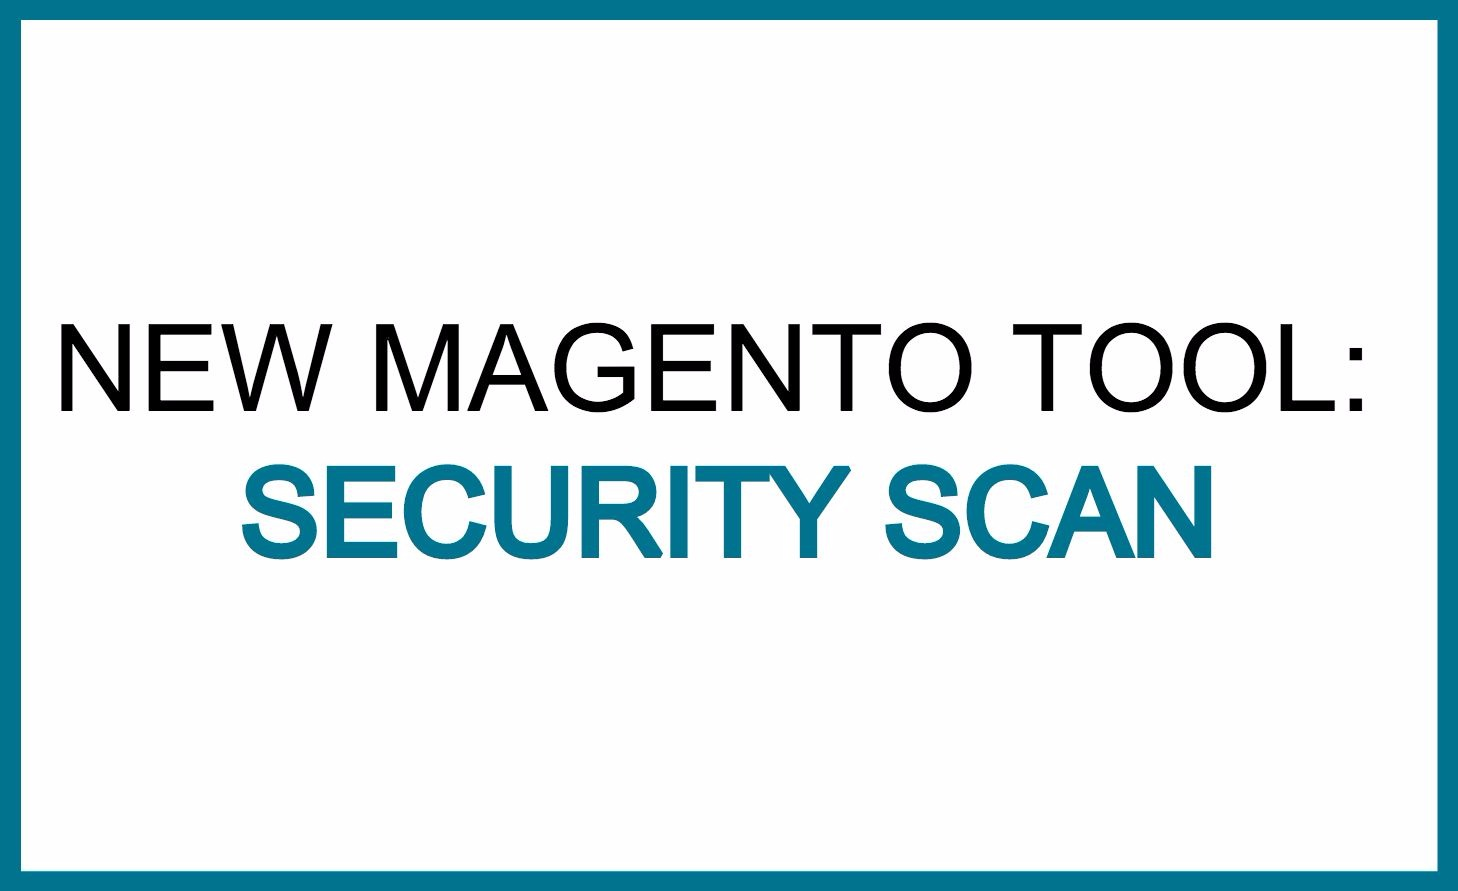 Magento security scan tool.jpg